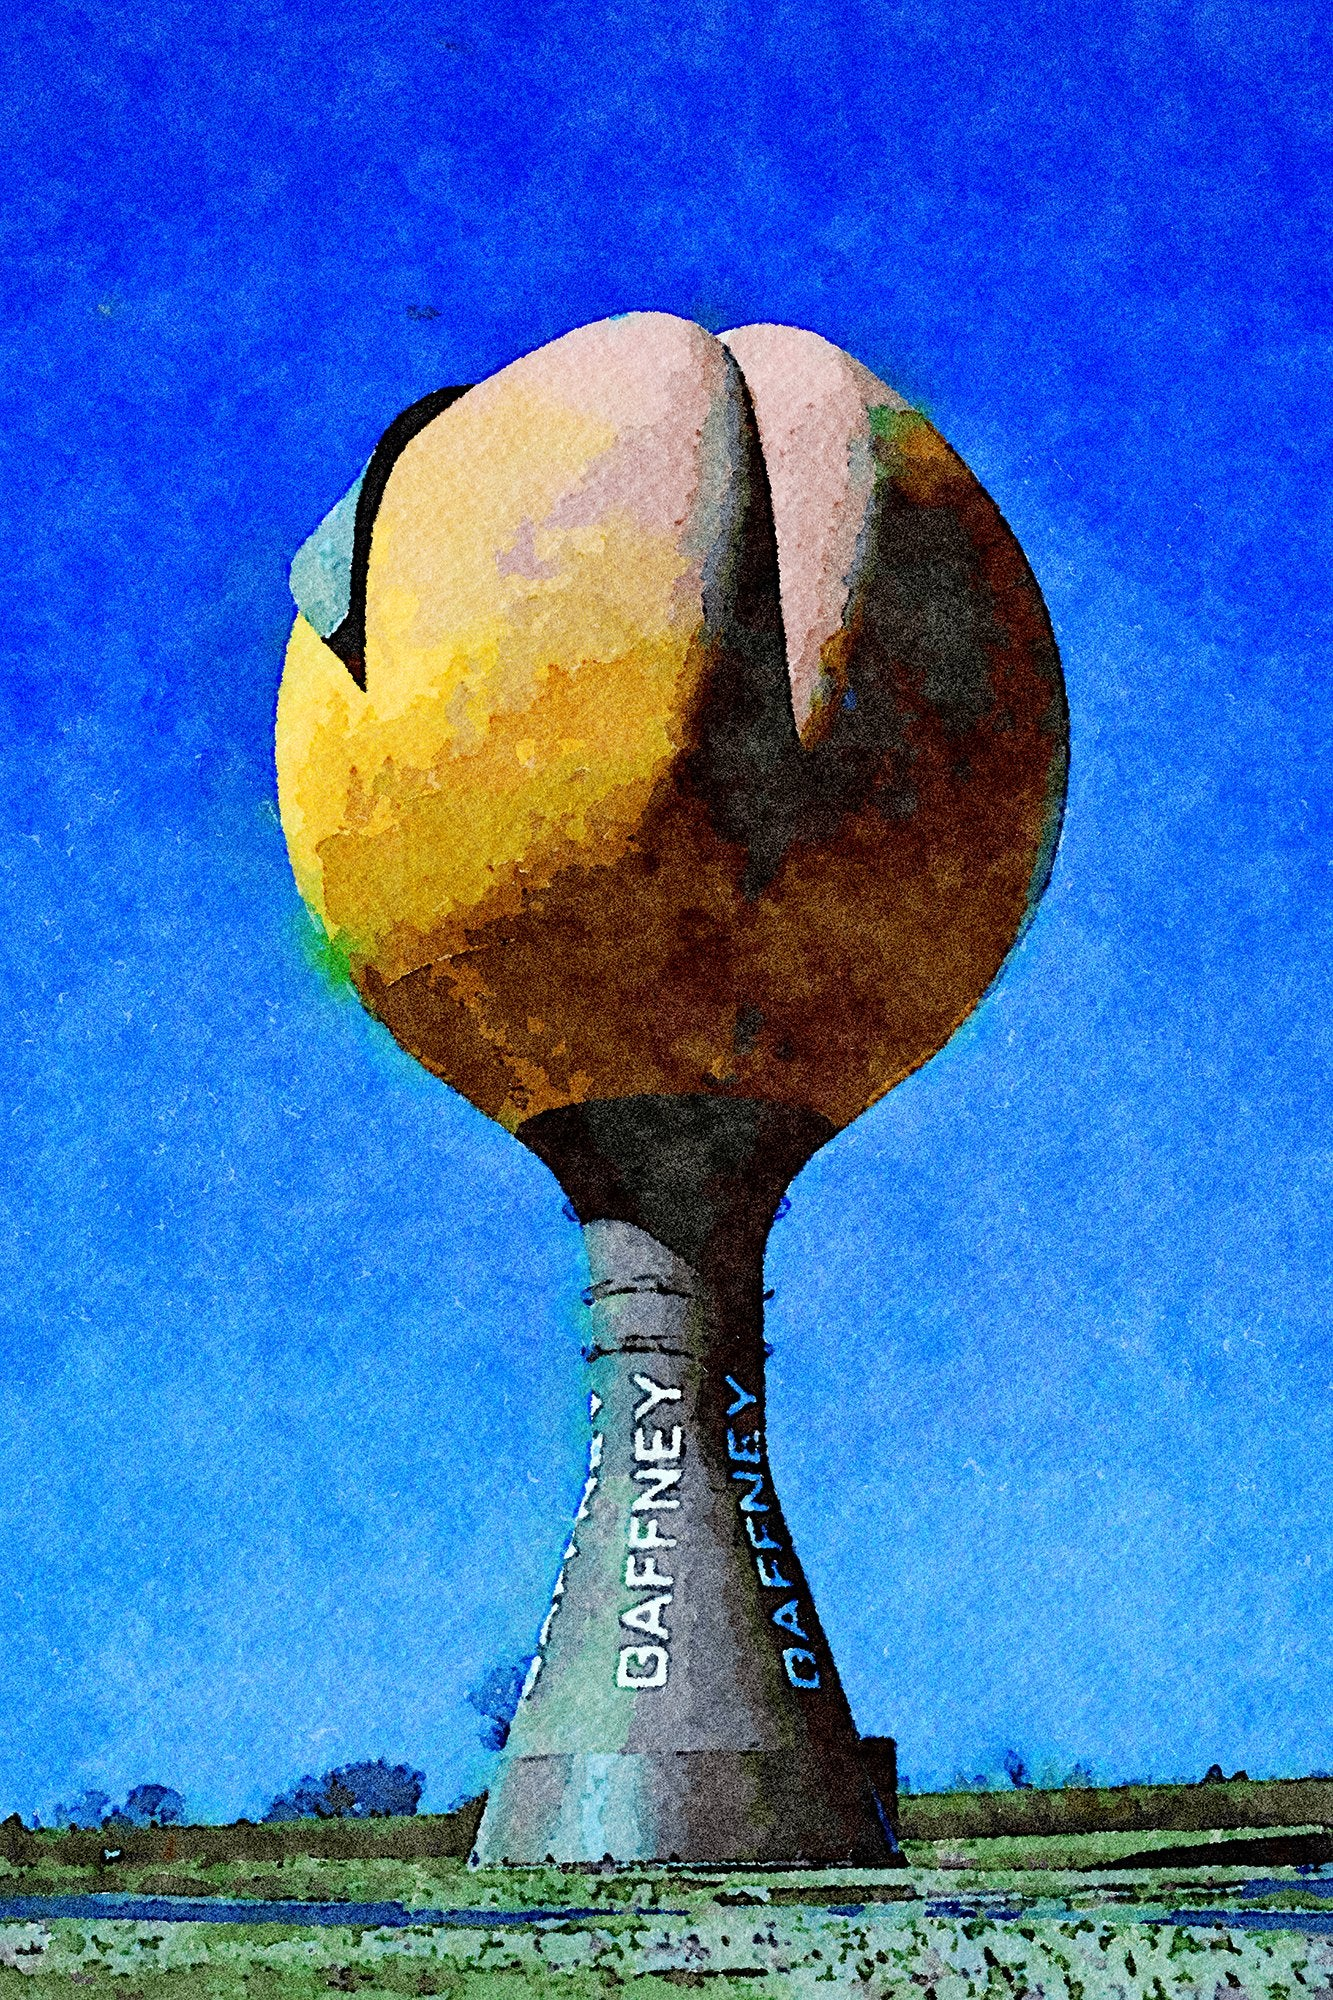 Peach Water Tower, Frontage Road, Gaffney, South Carolina, Reworked, Series 1